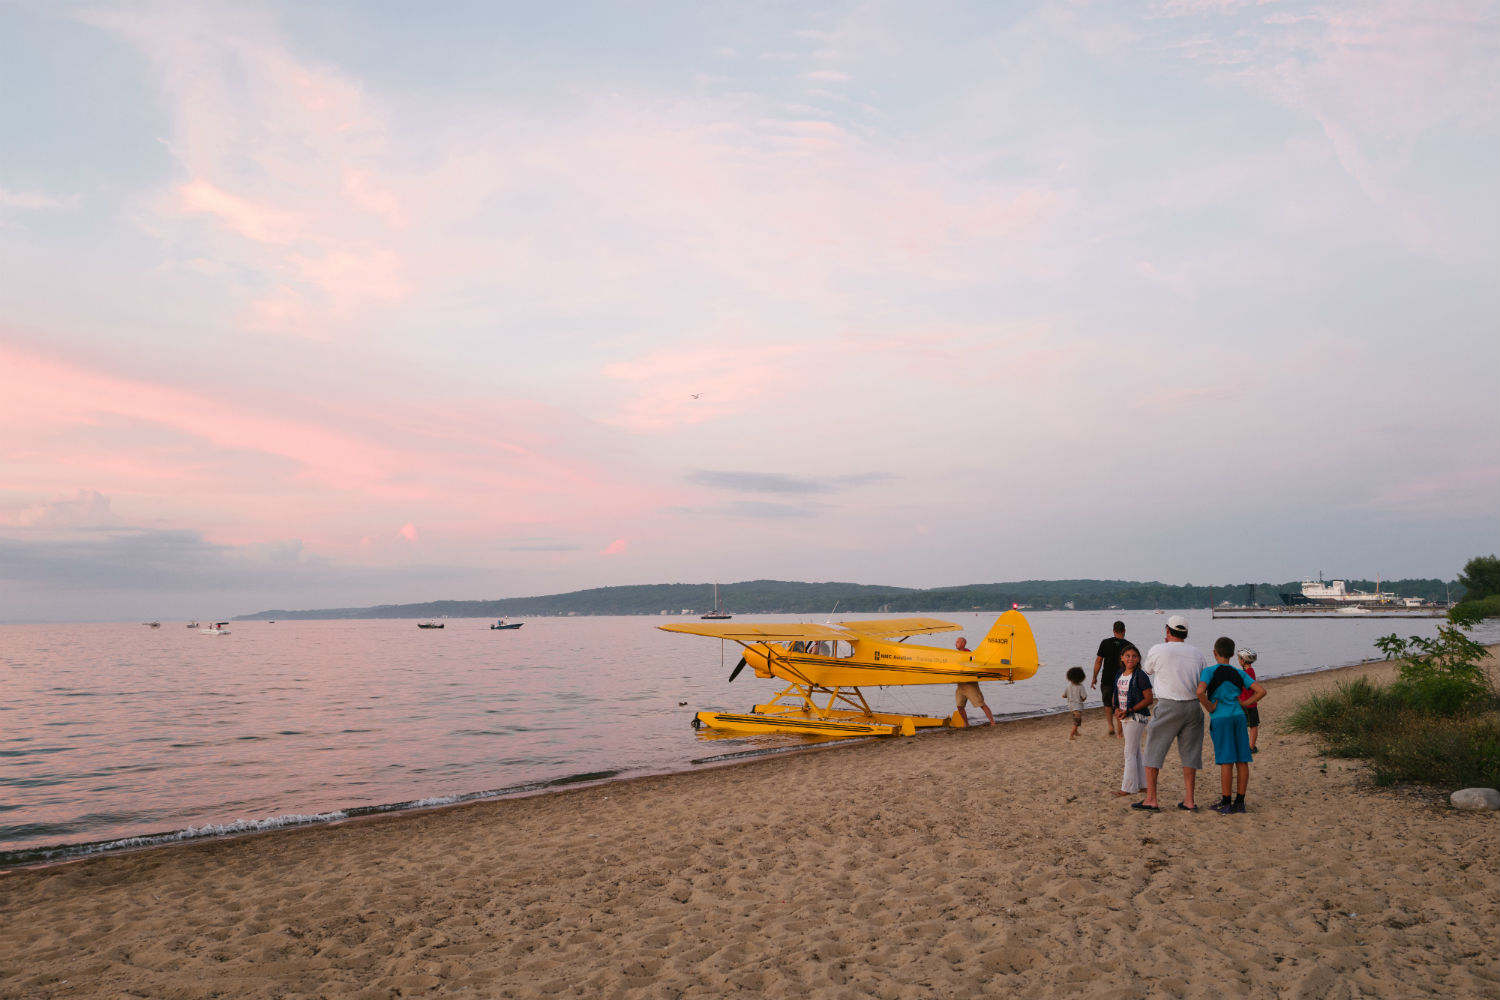 Top traverse city beaches for Craft shows in traverse city mi